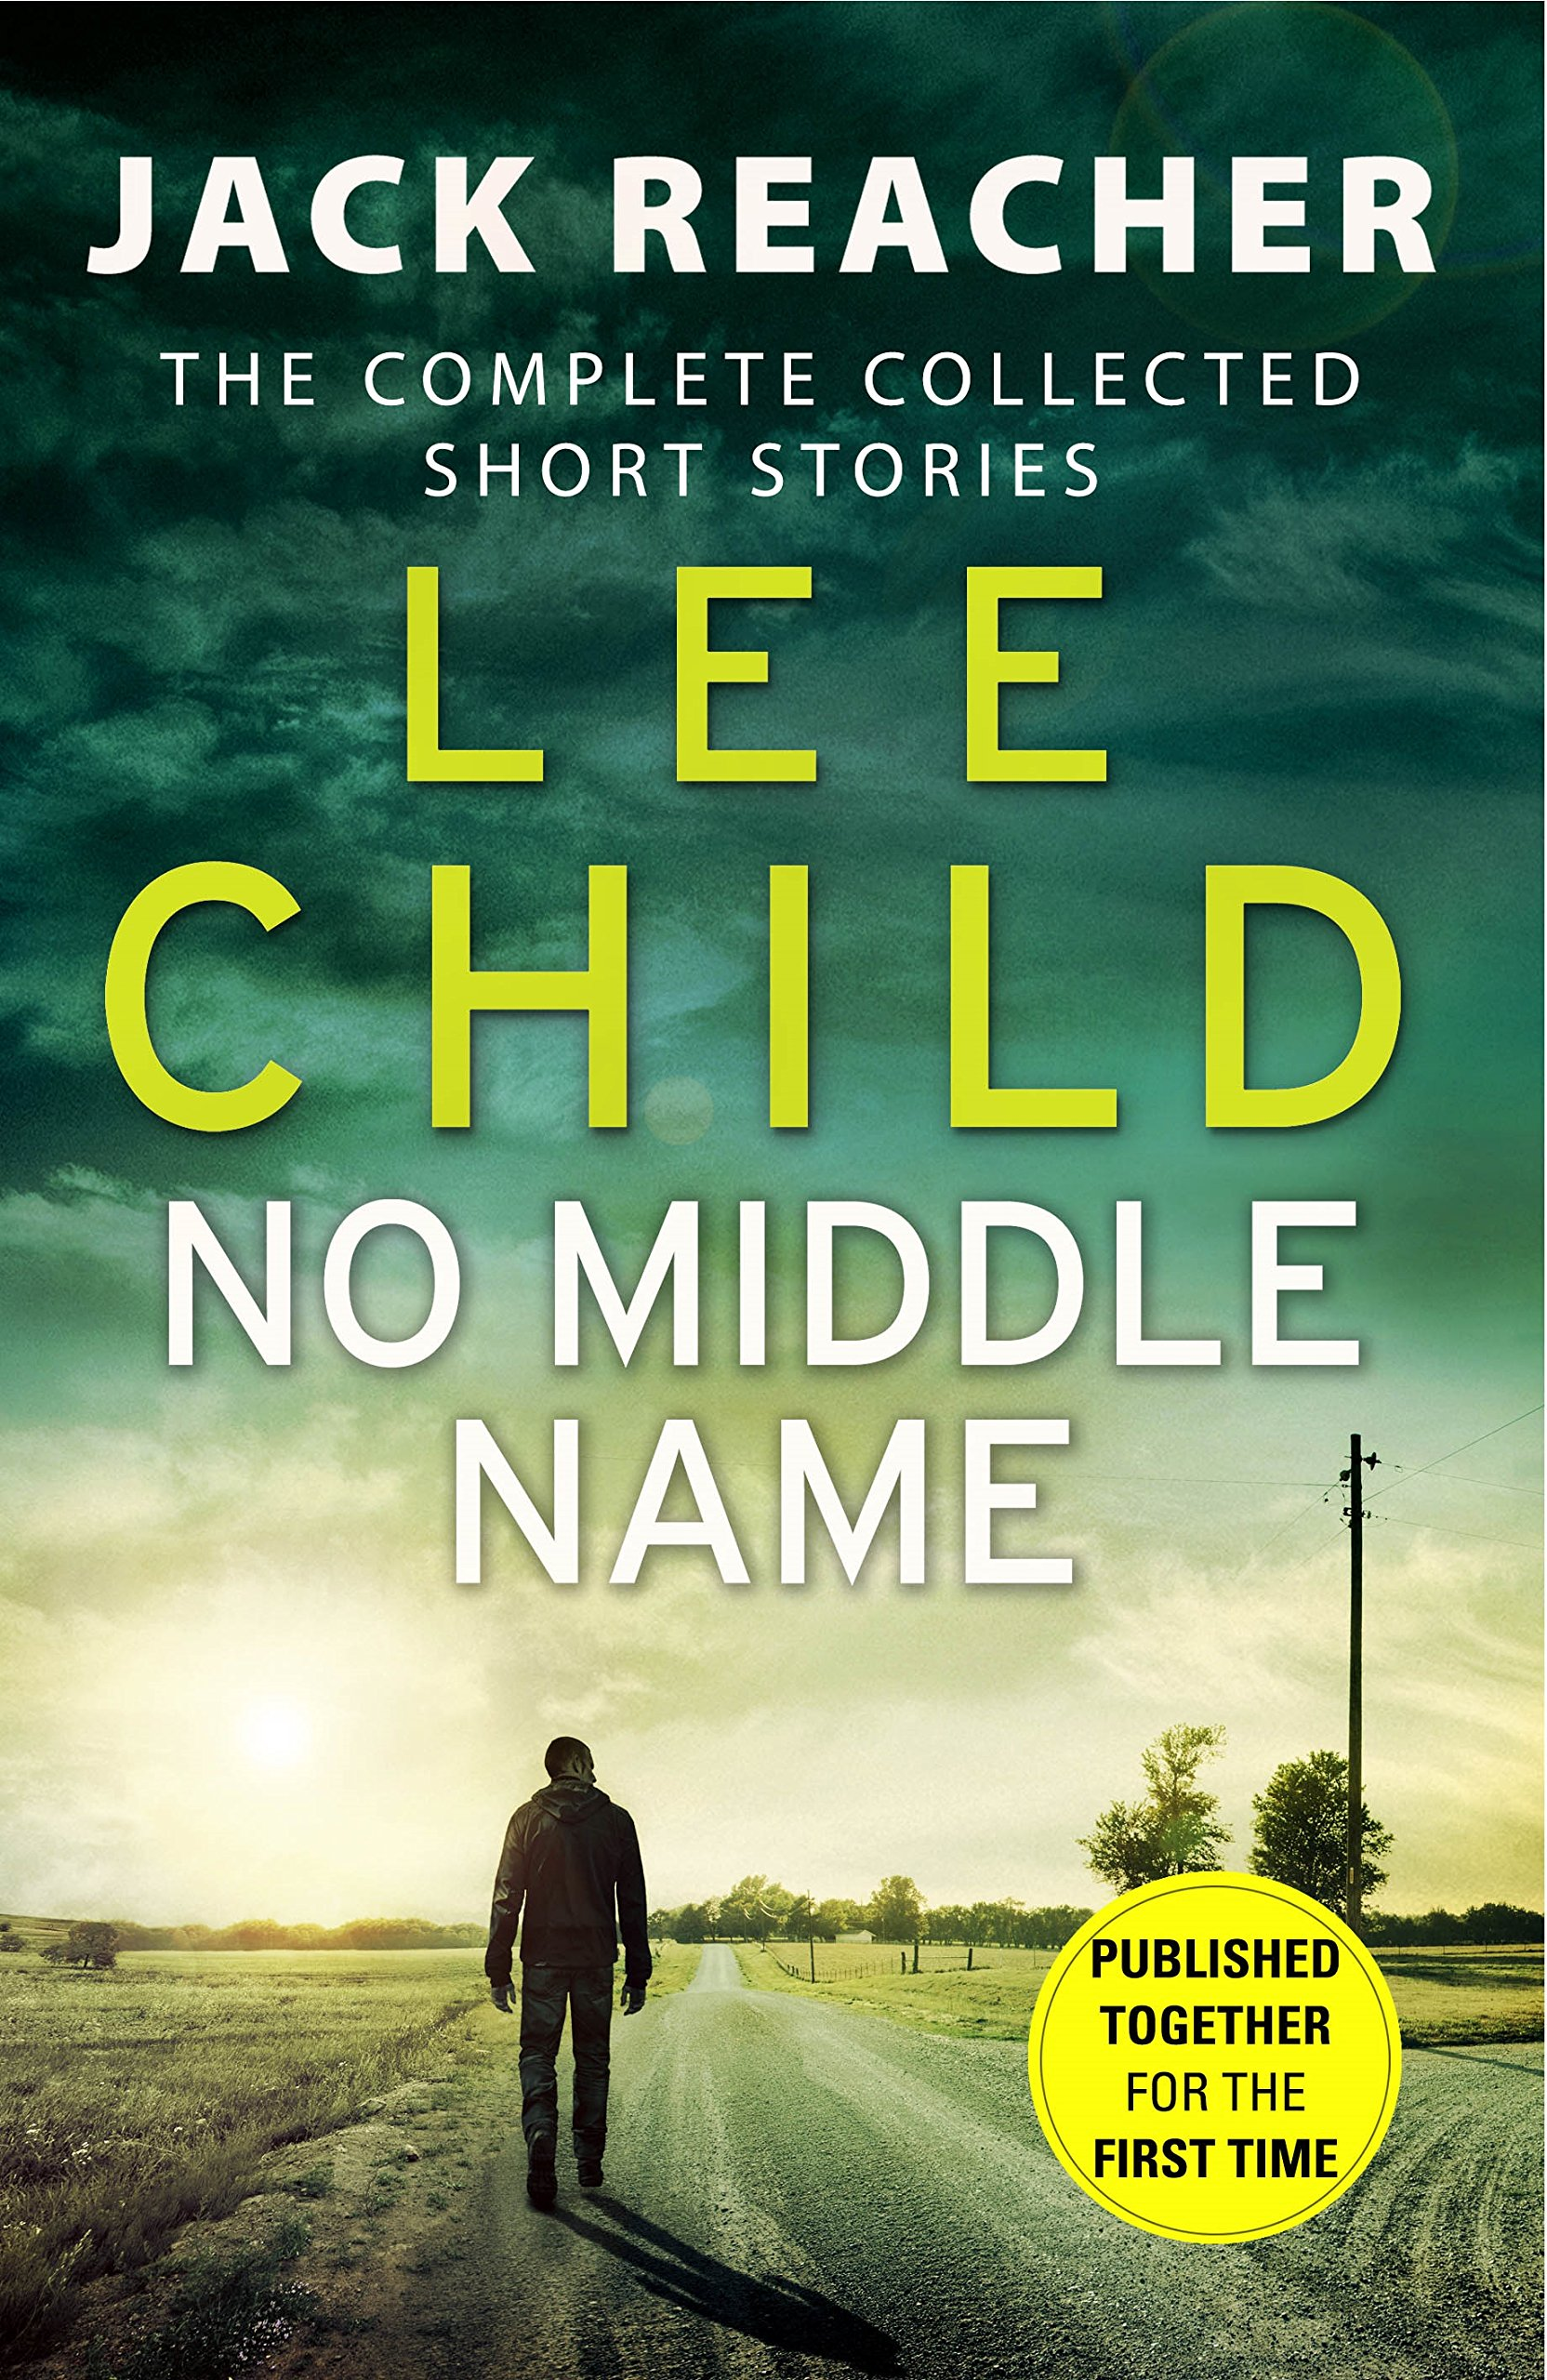 No Middle Name: The Complete Collected Jack Reacher Stories (Jack Reacher Short Stories)  -  (PB)